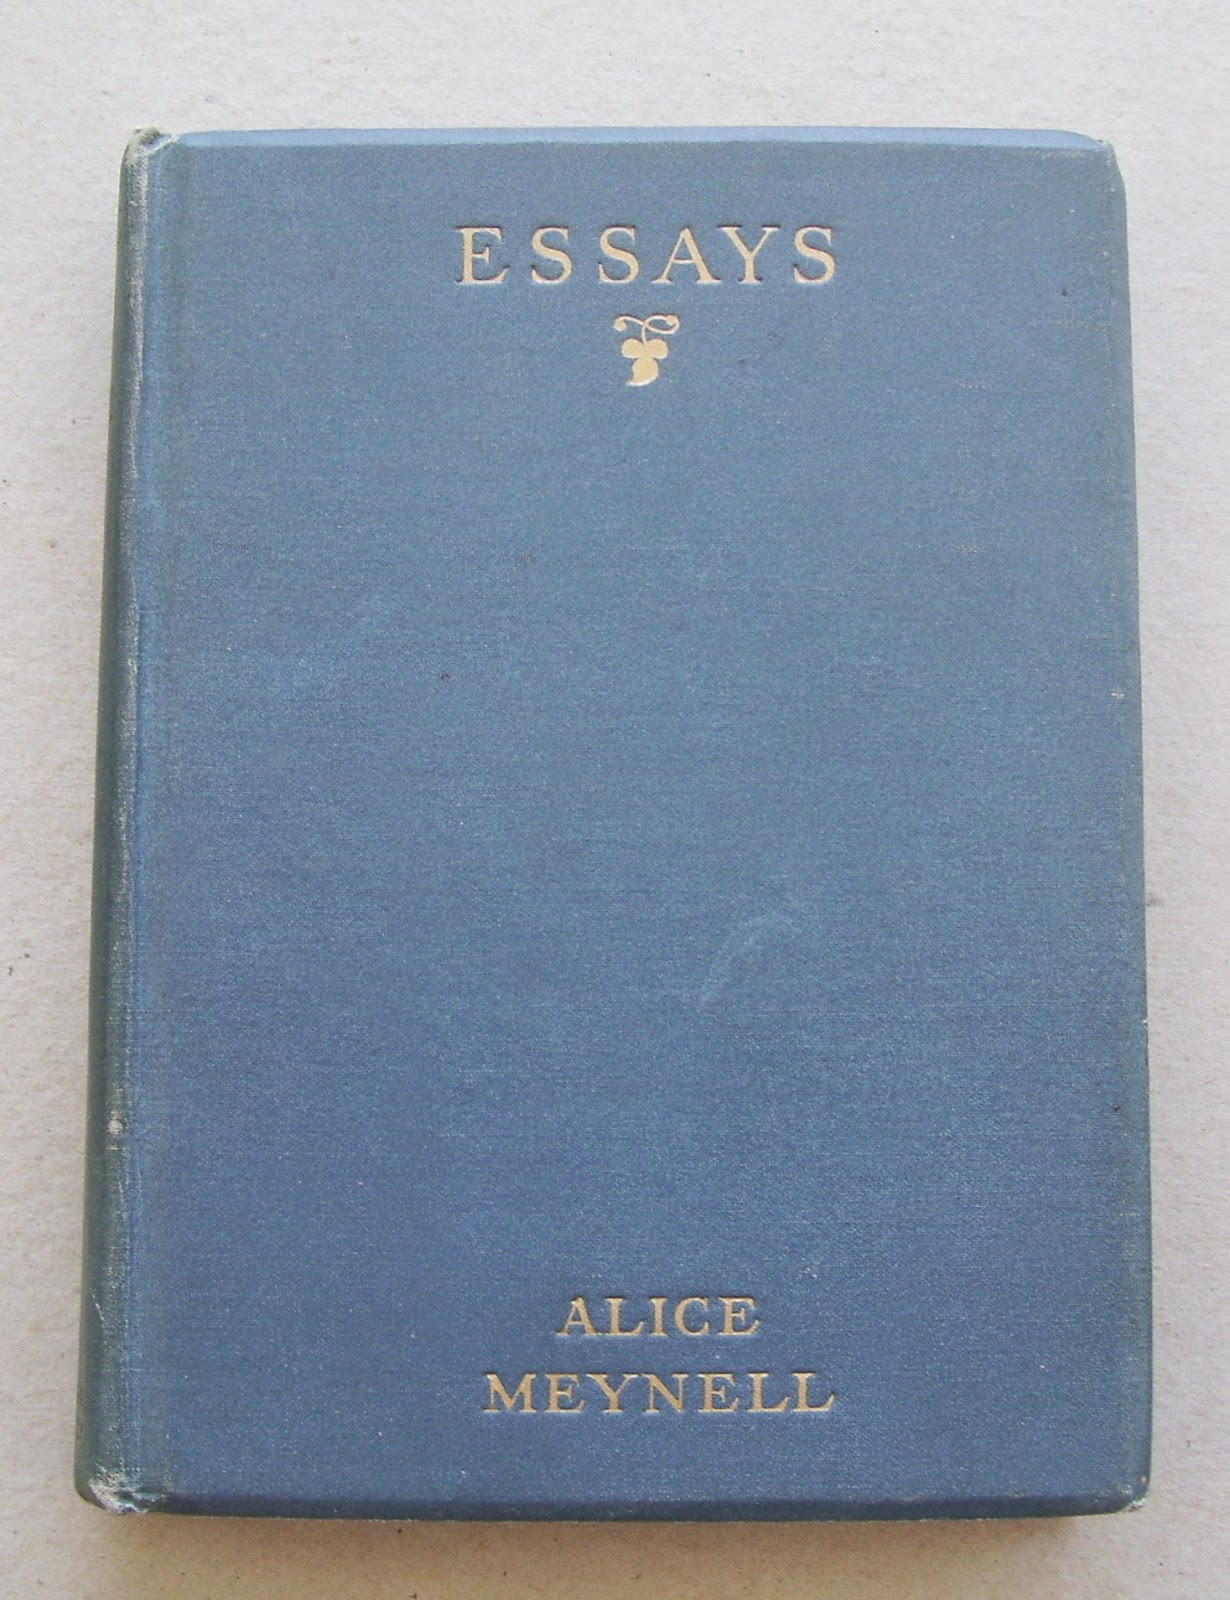 essays about sentimental things Group rules sentimental things is a group about things that are non-living objects that have sentimental value to you, not monetary value (although they could be both.